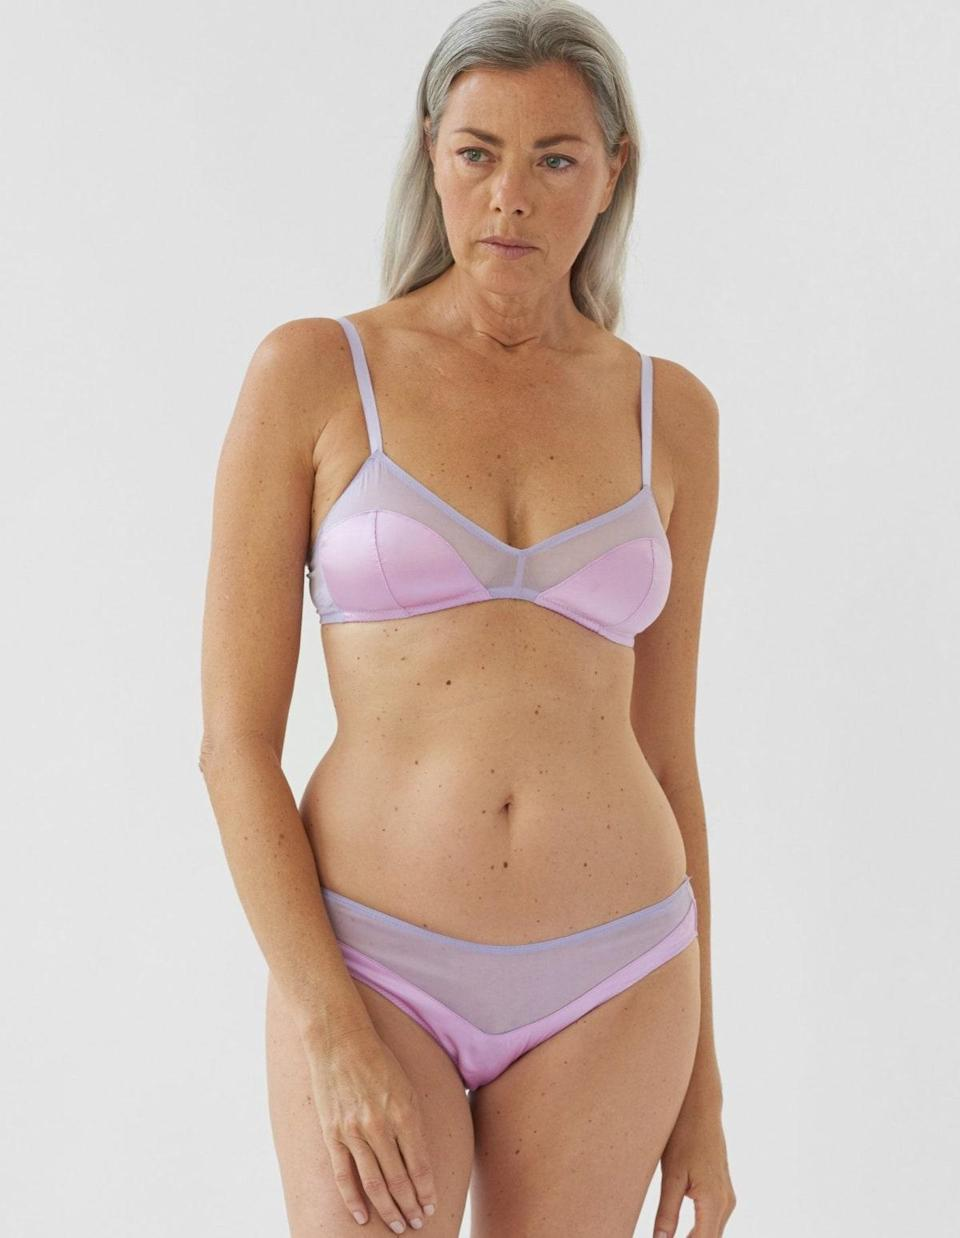 """Step into the world of Araks's dainty lingerie with one of its best-sellers. Available in nine other pretty colors, this soft-cup bra features adjustable straps, soft silk cups, and contrasting chiffon panels. It's the kind of bralette that instantly inspires confidence, whether you're lounging at home or headed out for dinner. $103, Araks. <a href=""""https://www.araks.com/products/beatrice-bralette-posey?variant=32854829793360"""" rel=""""nofollow noopener"""" target=""""_blank"""" data-ylk=""""slk:Get it now!"""" class=""""link rapid-noclick-resp"""">Get it now!</a>"""